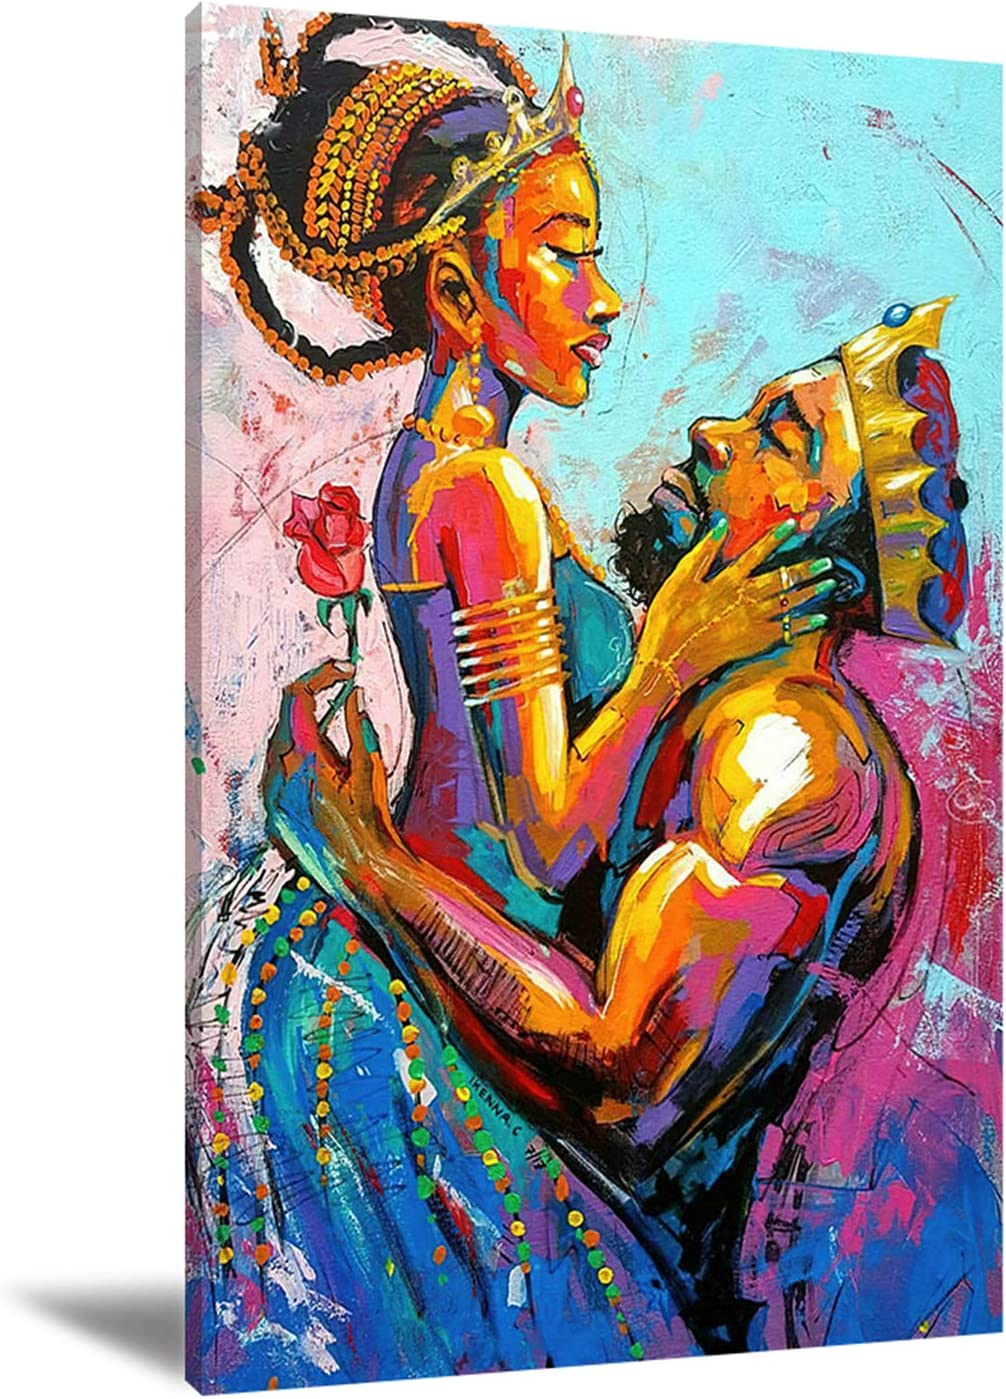 MITAKU African King and Queen Canvas Wall Art Black Art Paintings for Wall King & Queen Crowns Poster for Adult Bedroom Decor African Lovers Picture Artwork 24x16in Frameless